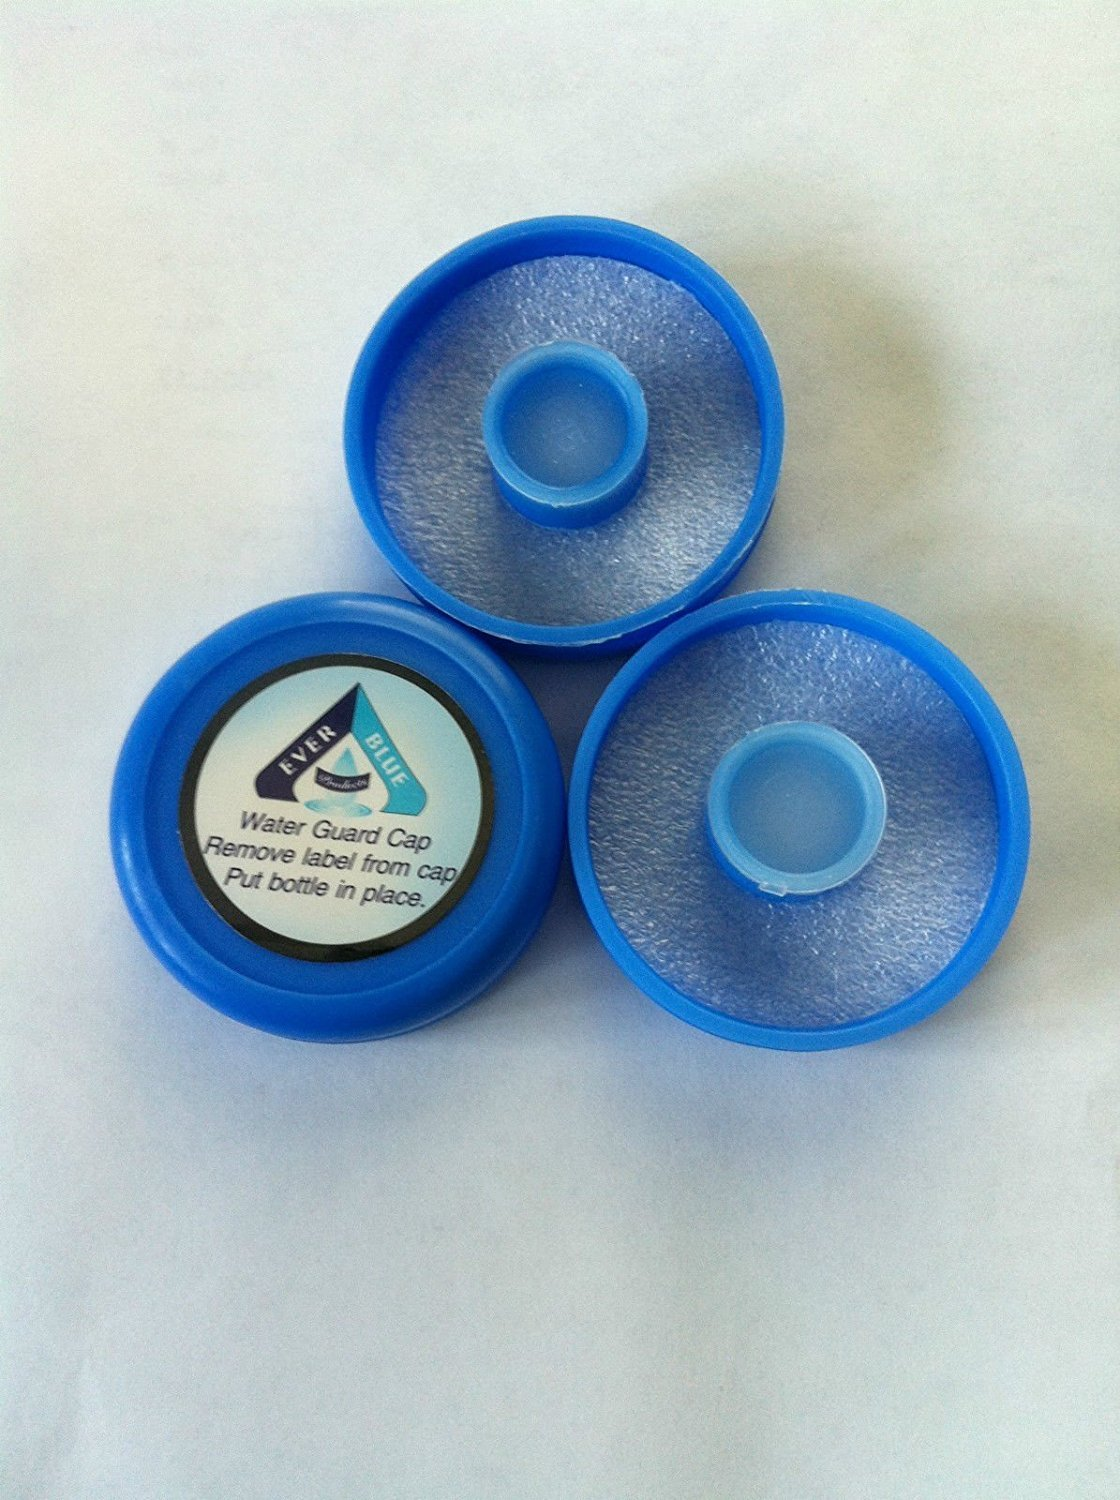 (Bag of 3) No spill reusable crown top water bottle push caps 55 mm by AquaNation